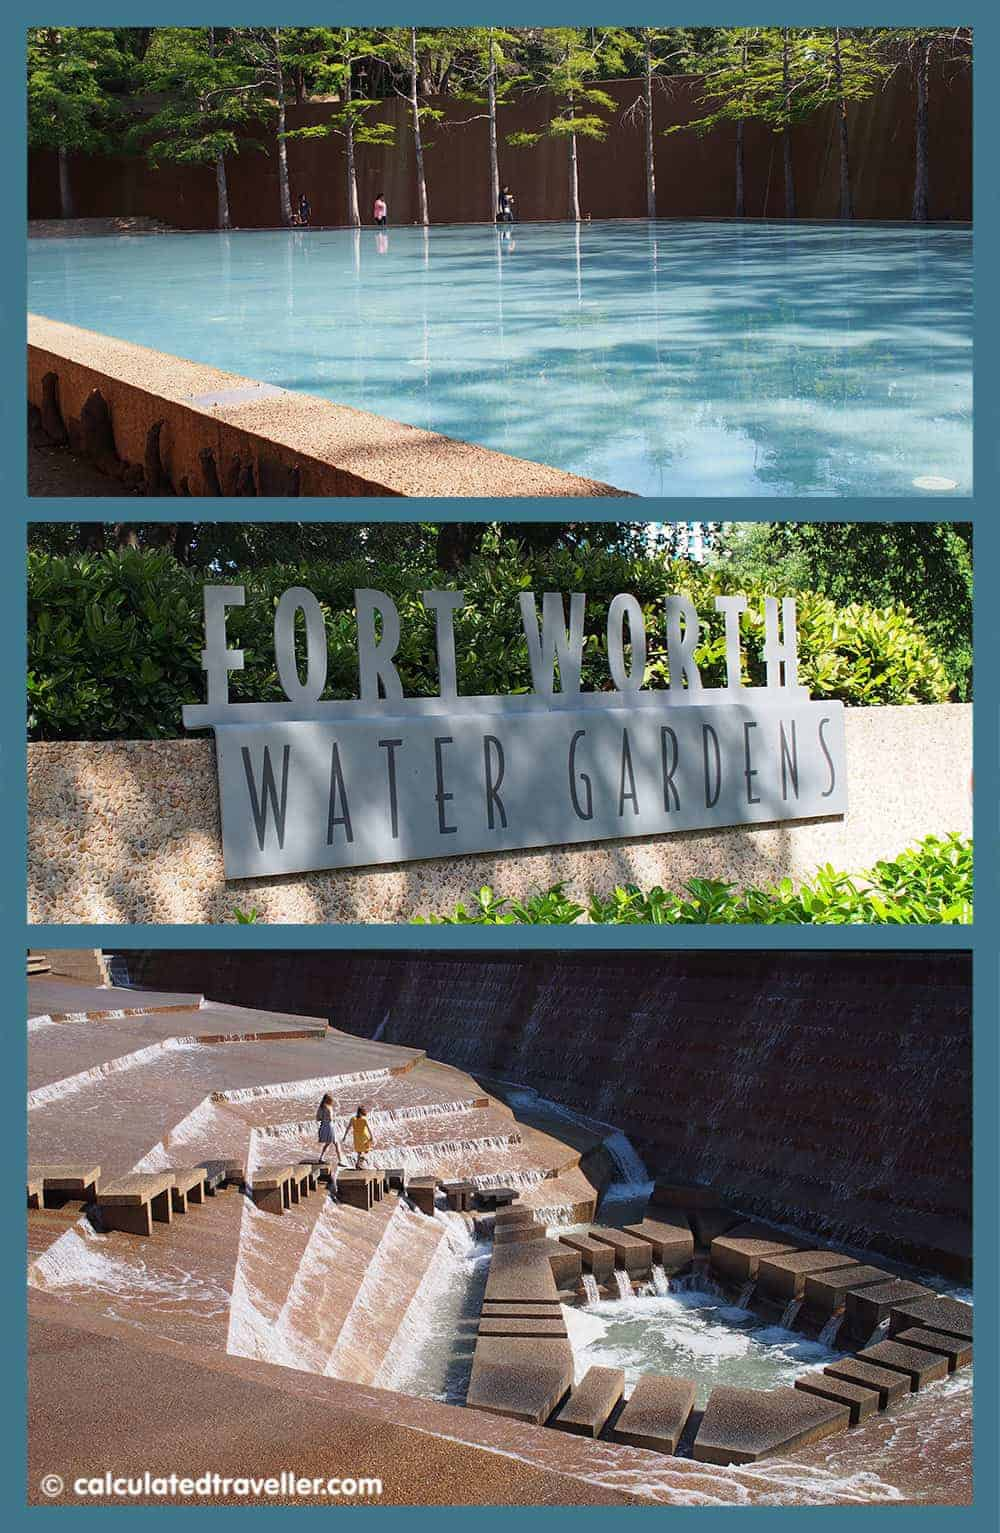 Fort Worth Water Gardens, Fort Worth Texas by Calculated Traveller